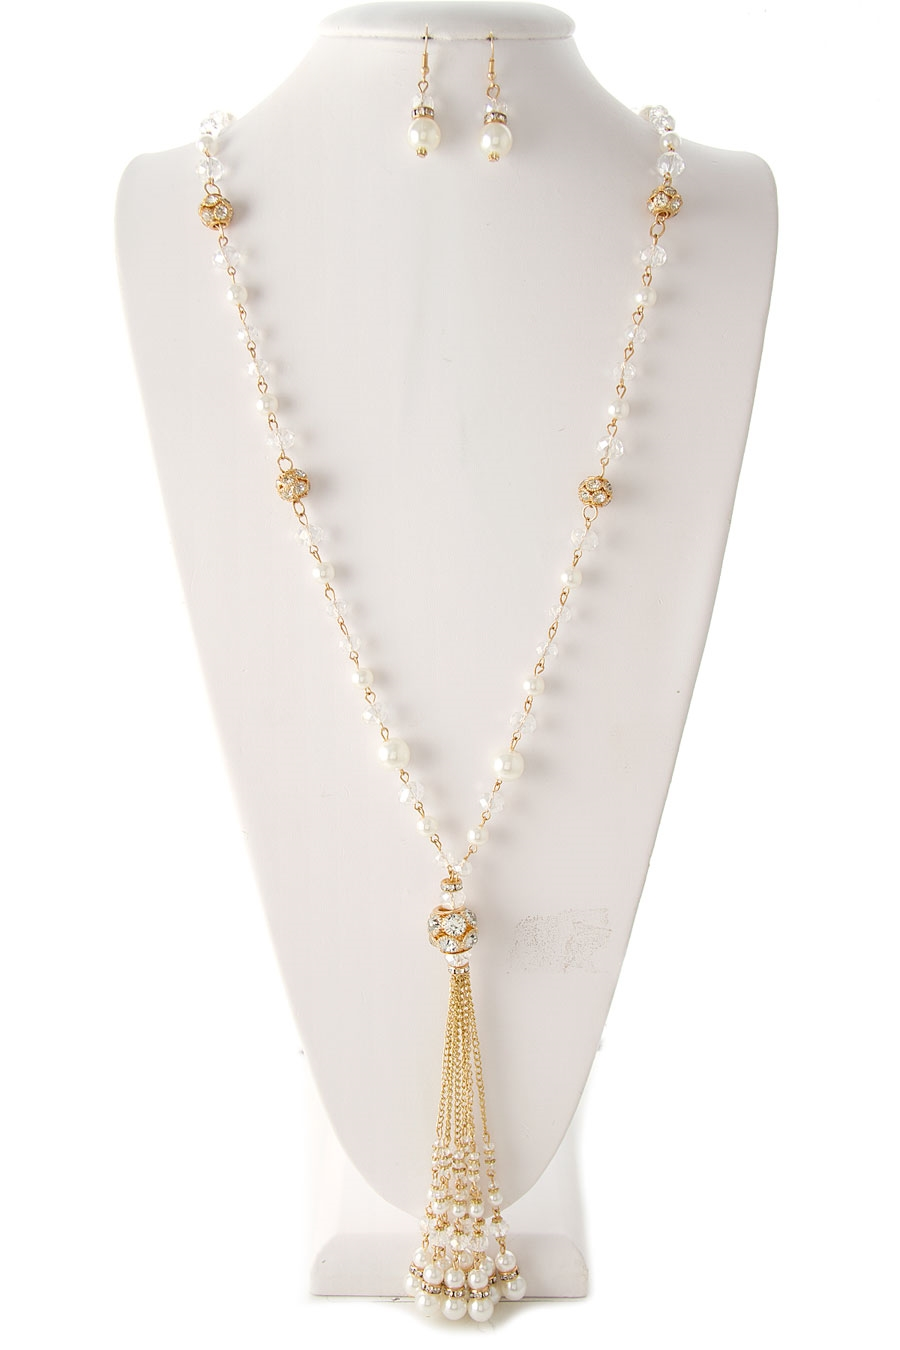 PEARL BEADS TASSEL NECKLACE - orangeshine.com